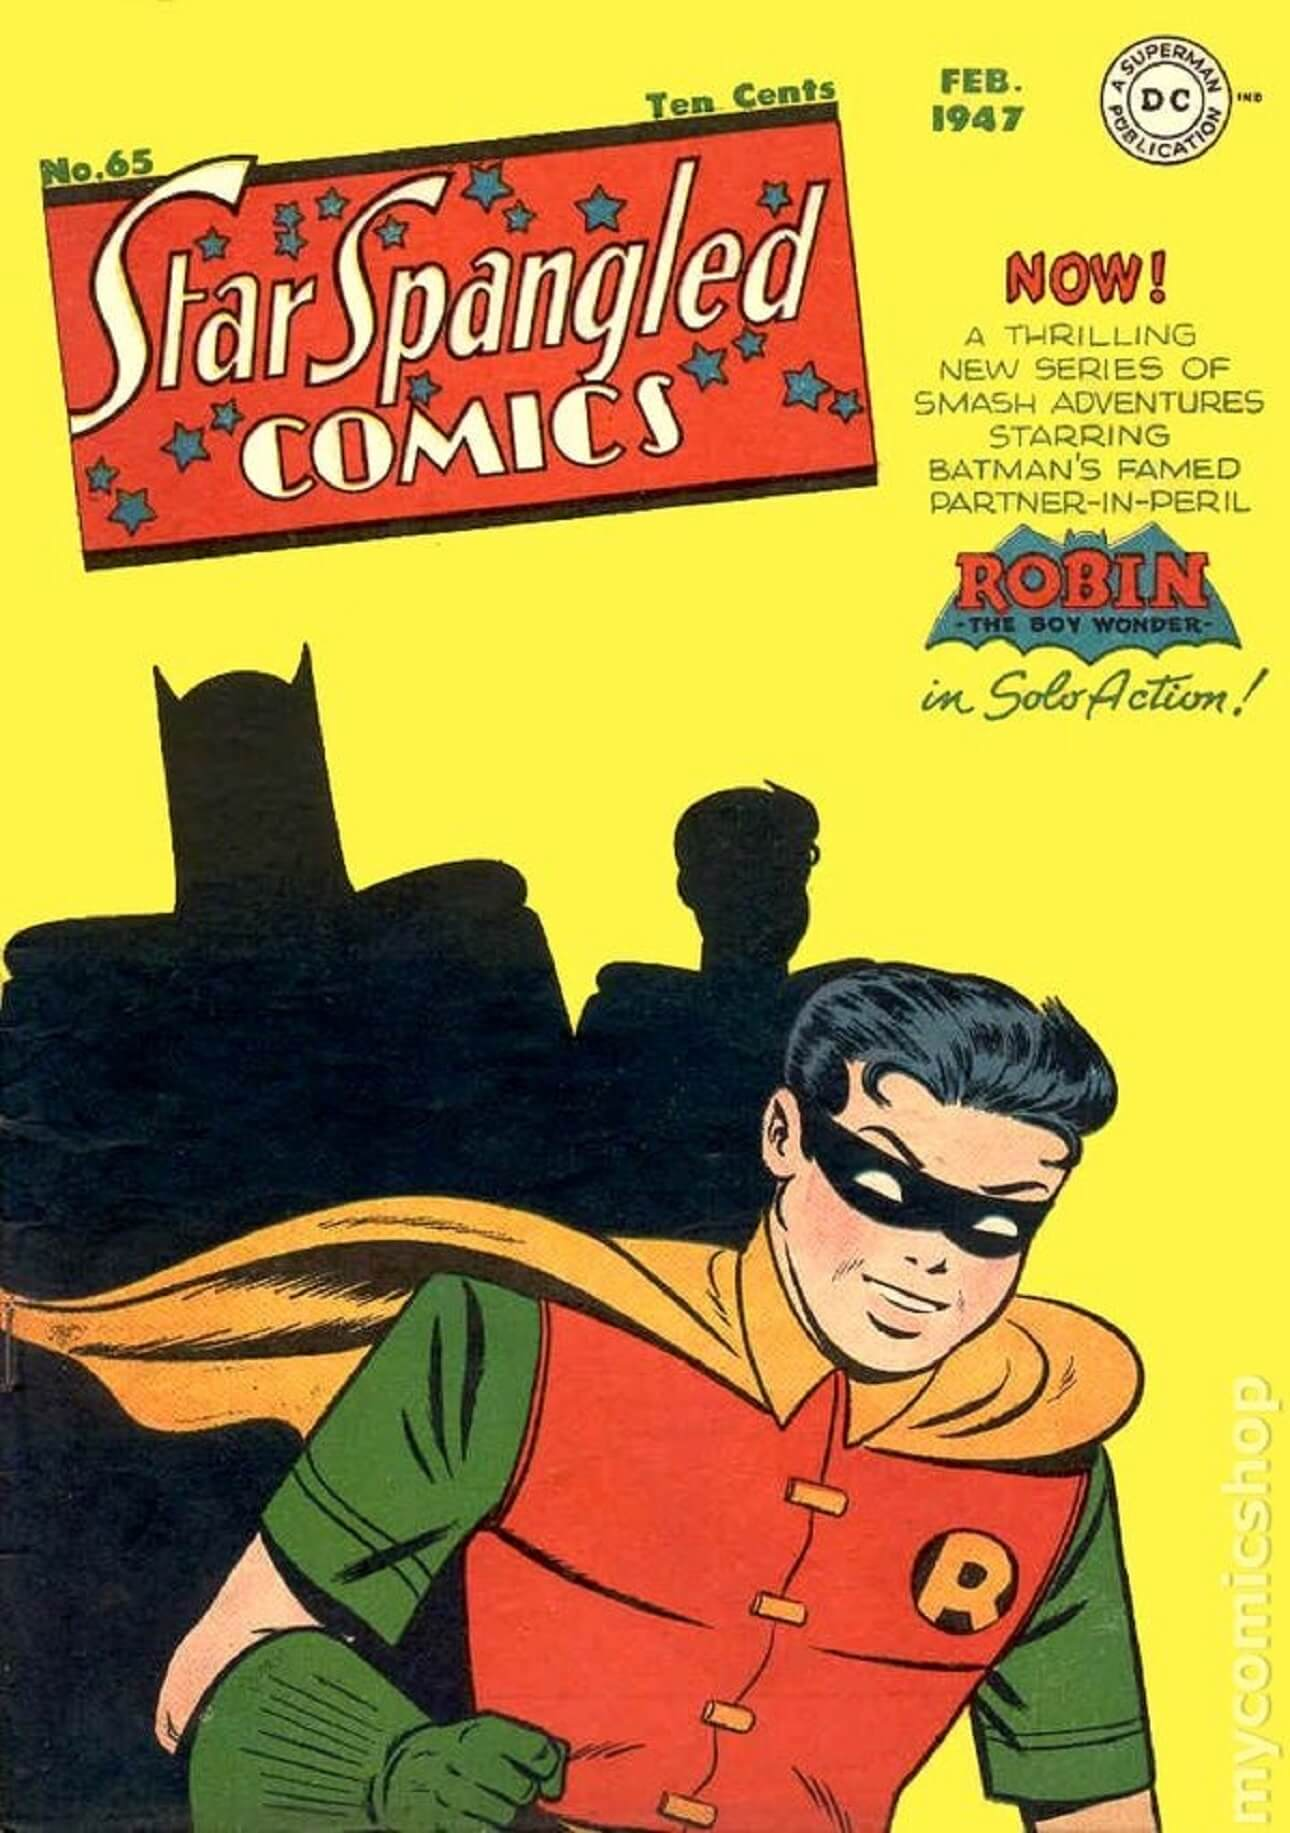 robin-star-spangled-comics.JPG